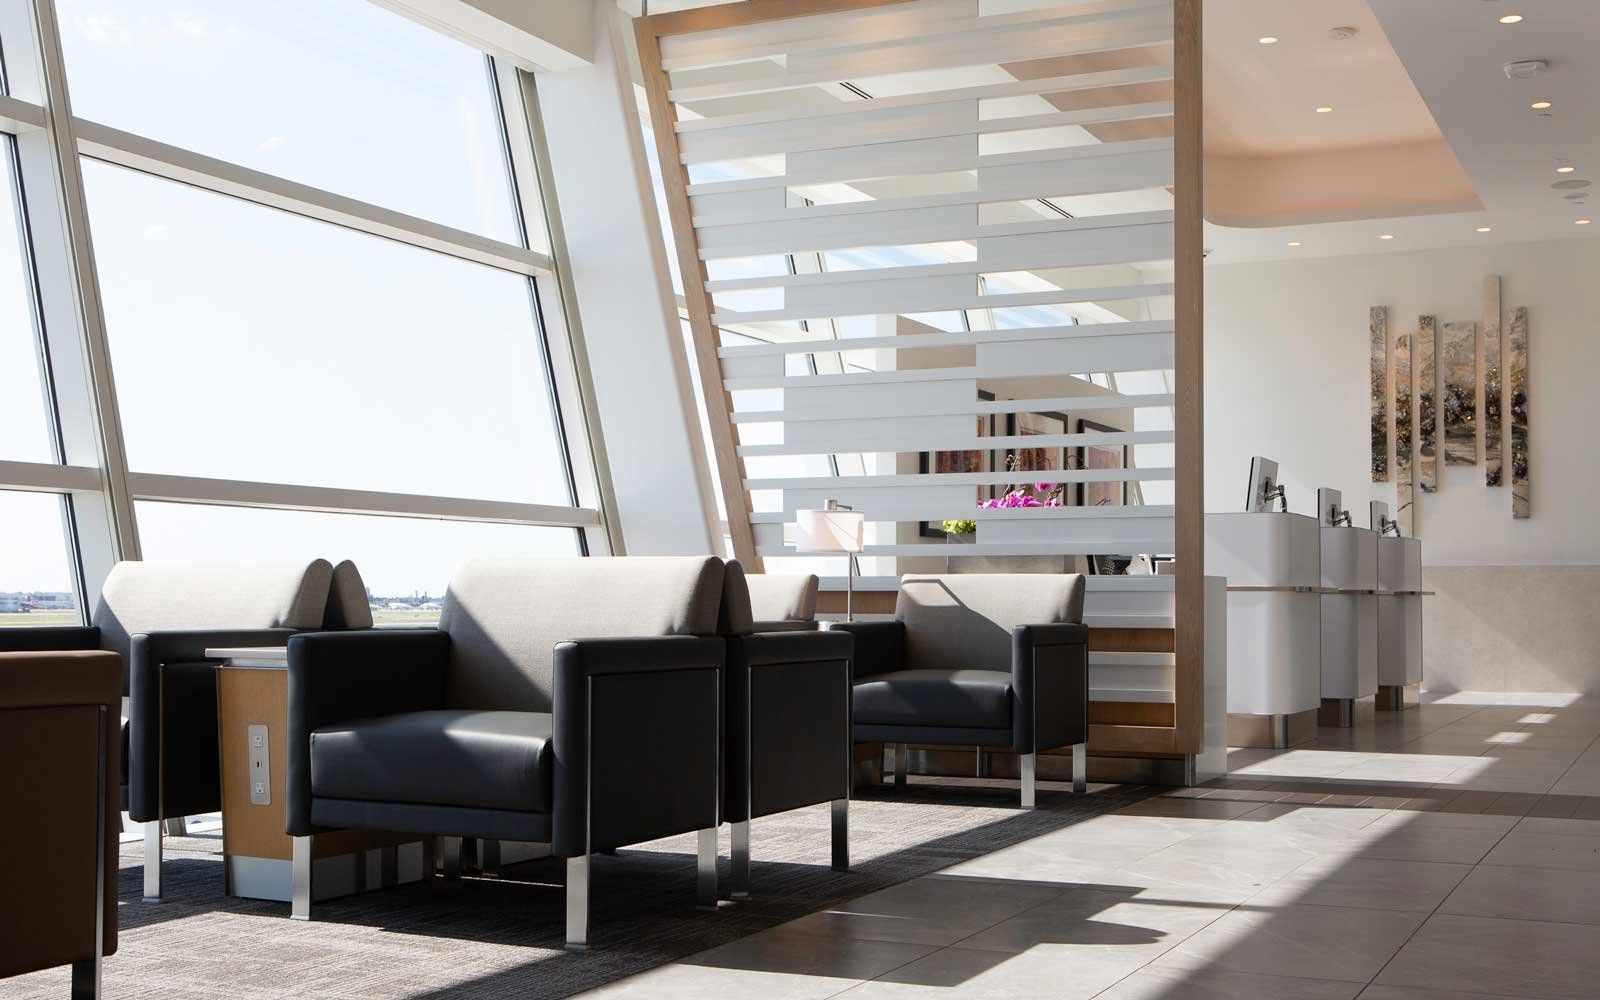 american airlines has a new lounge at dallas fort worth that